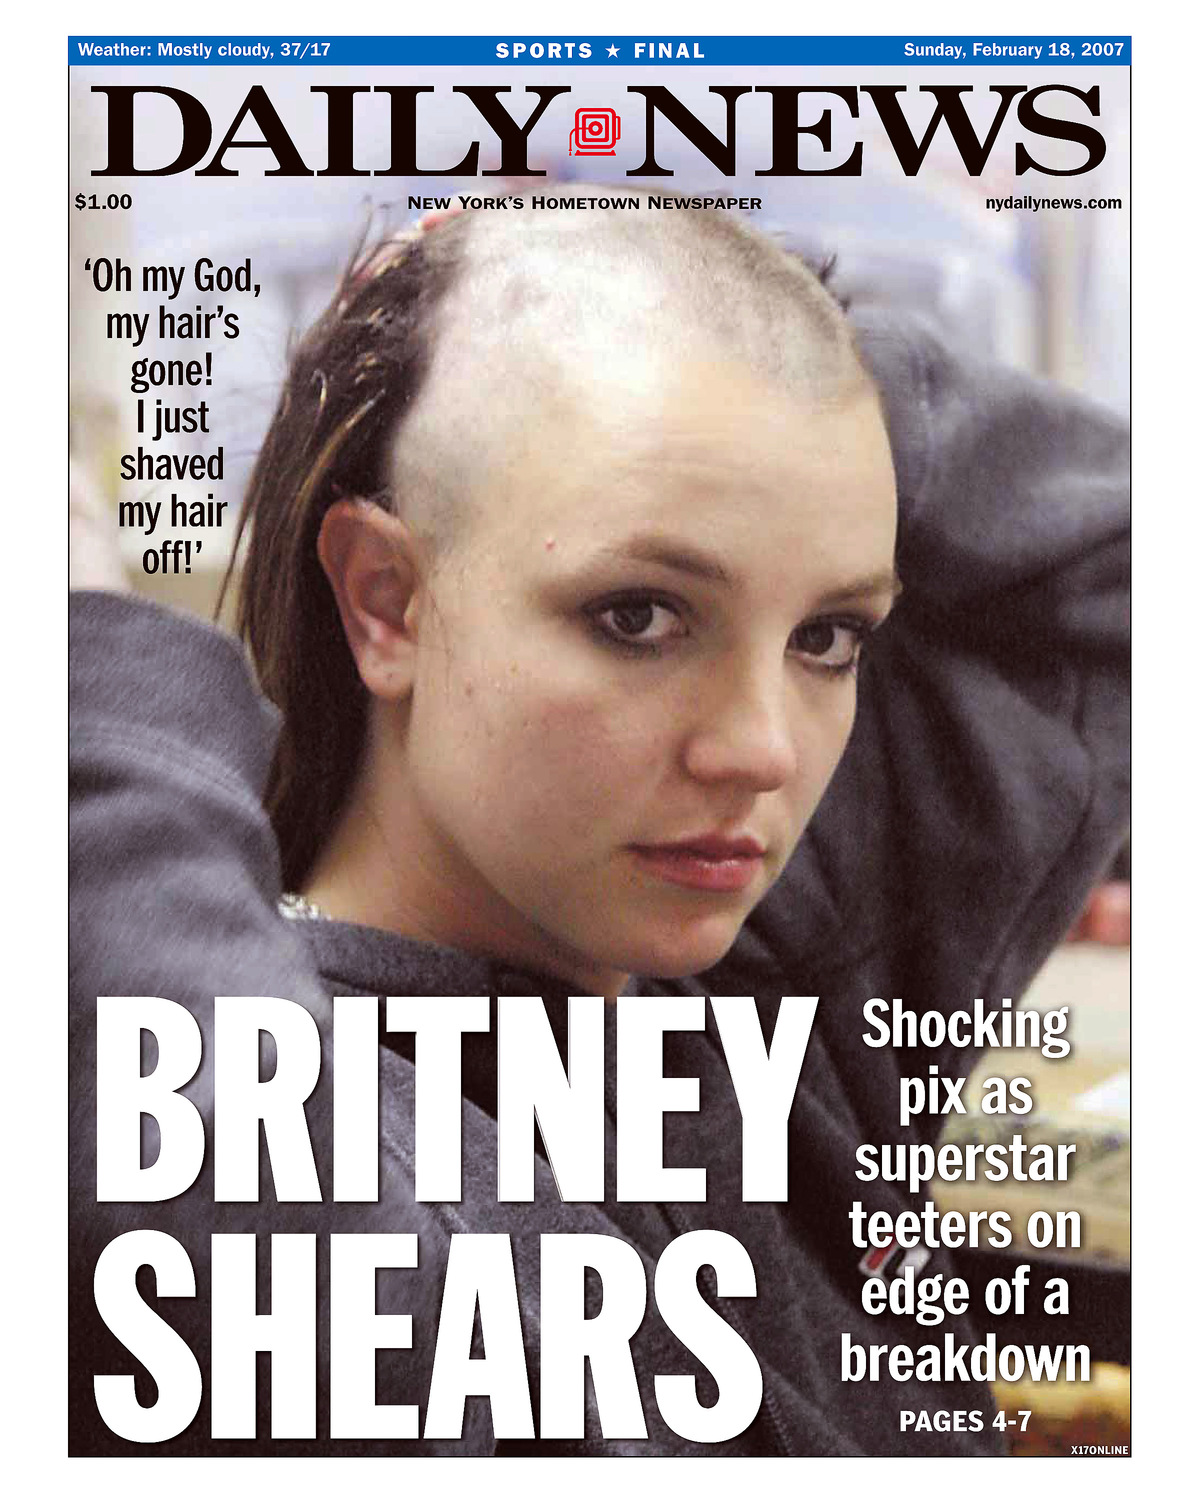 Britney Spears 2007 A Timeline Of Her Infamous Breakdown